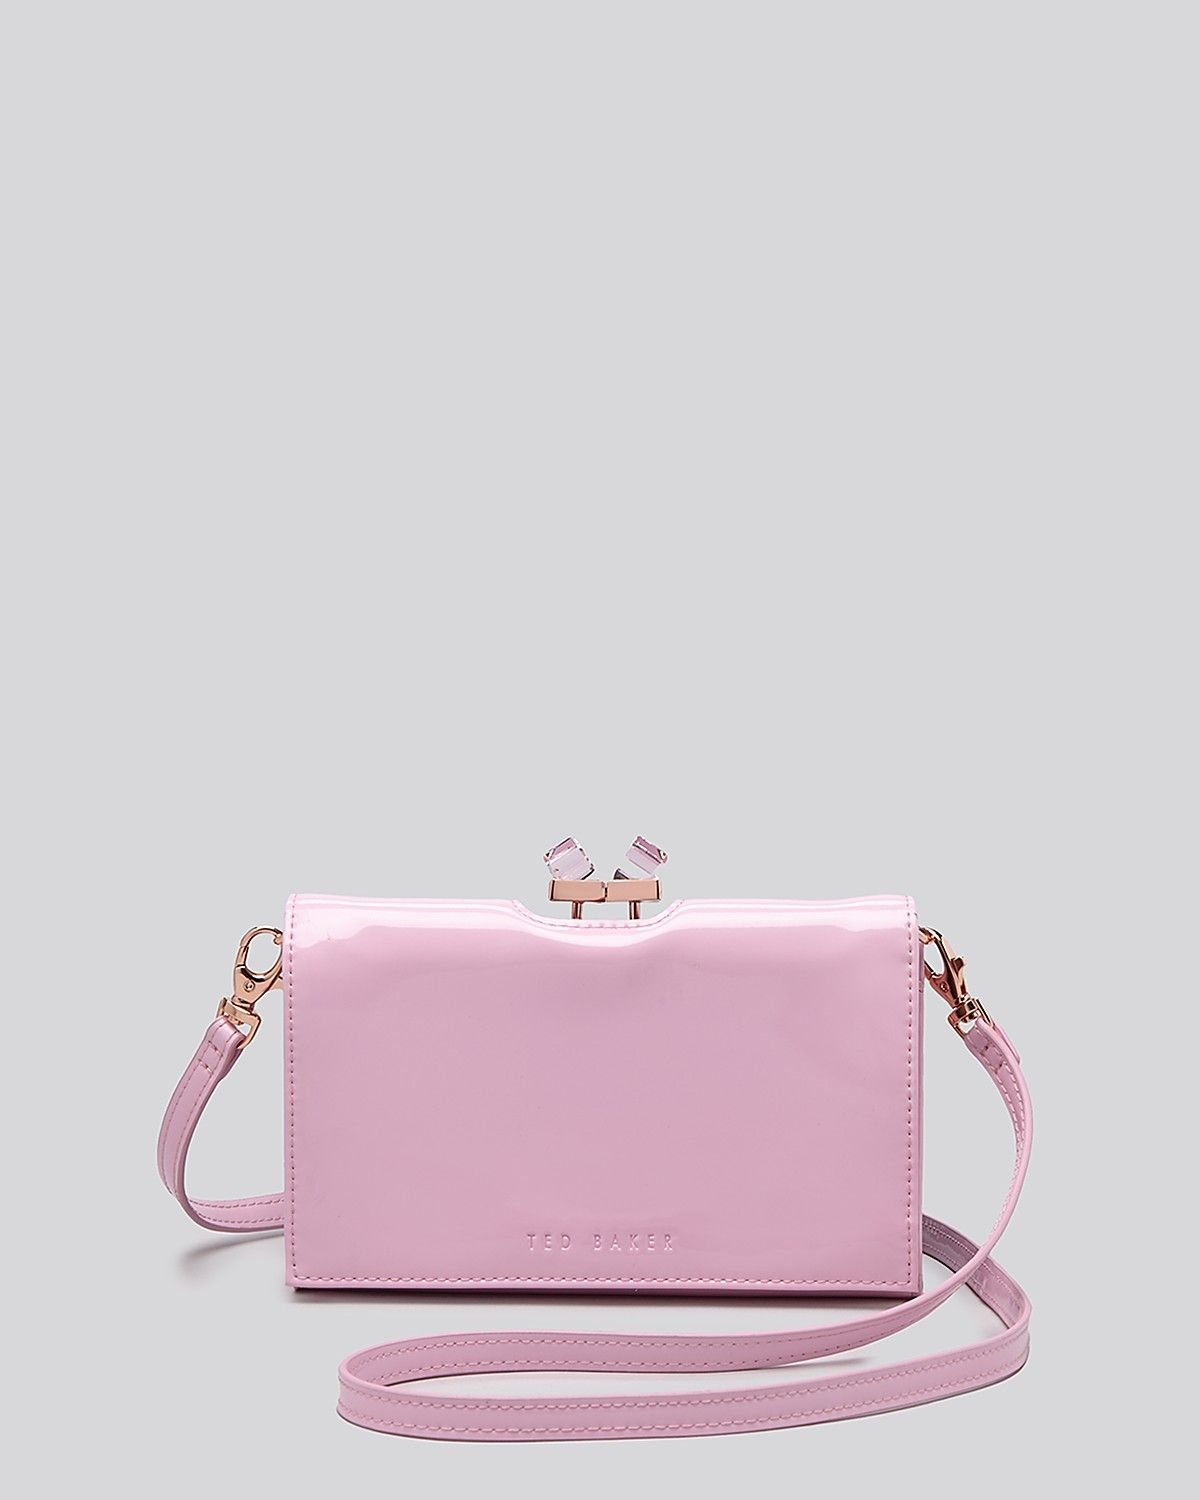 Ted Baker Crossbody Patent Square Crystal Bloomingdale S Clutch Purse Purses